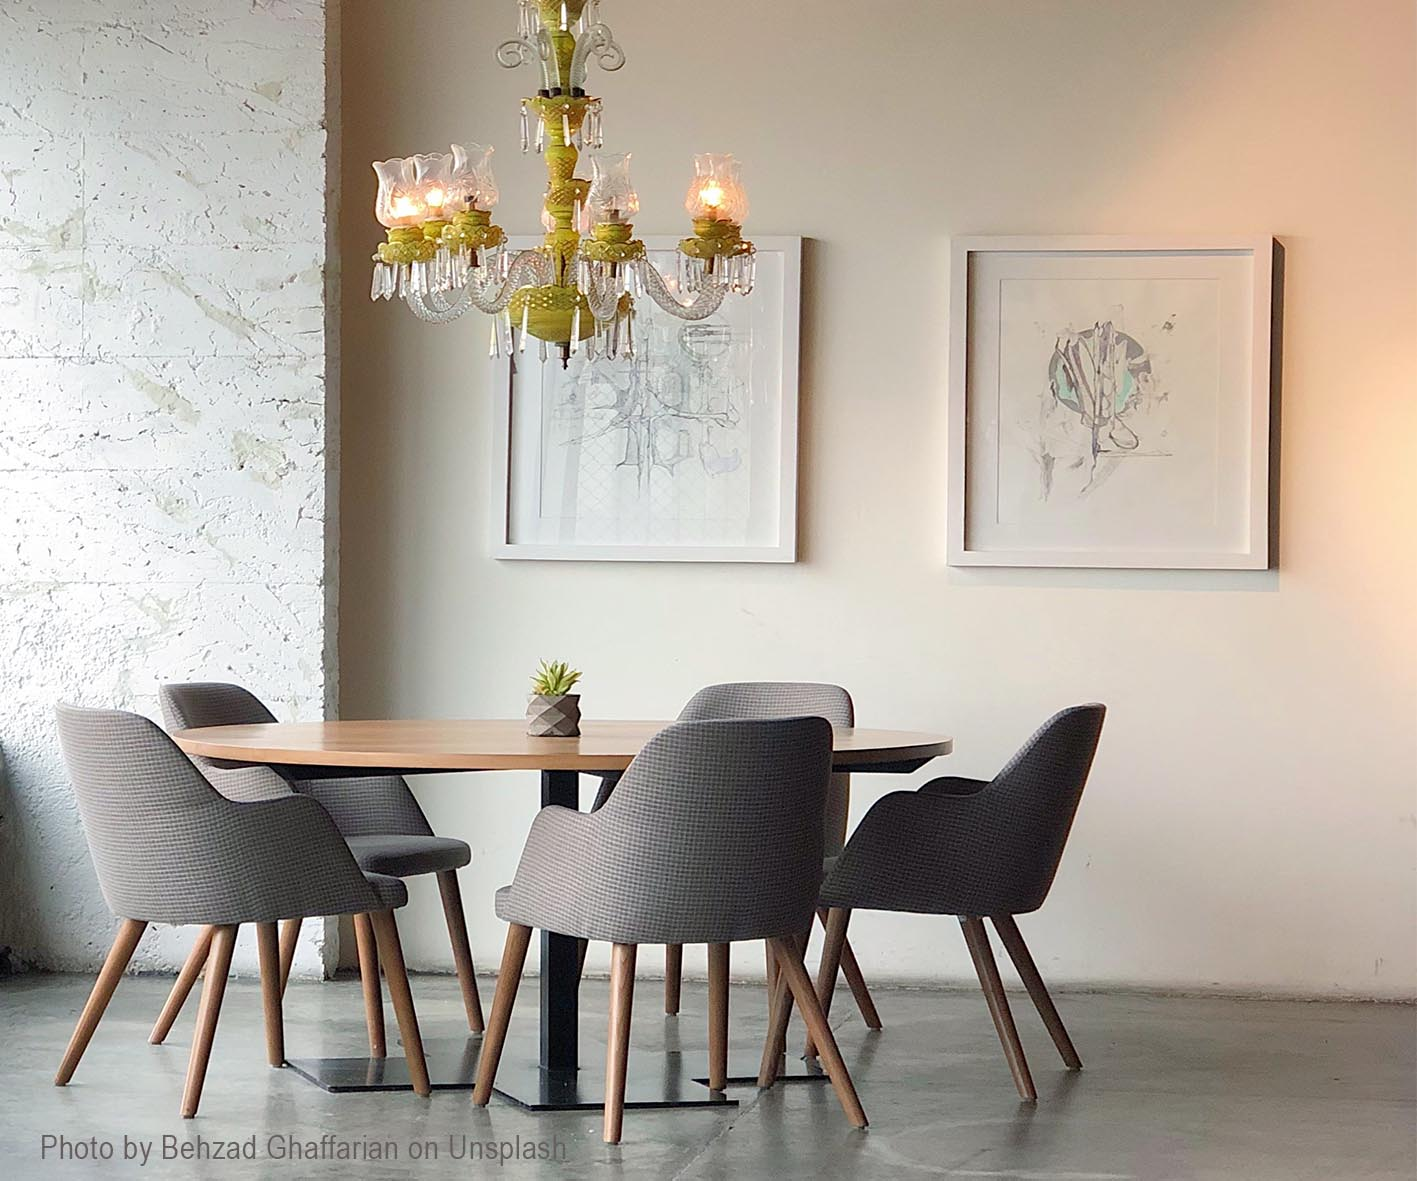 5-Tips-For-Furnishing-A-New-Home - 5-Tips-For-Furnishing-A-New-Home